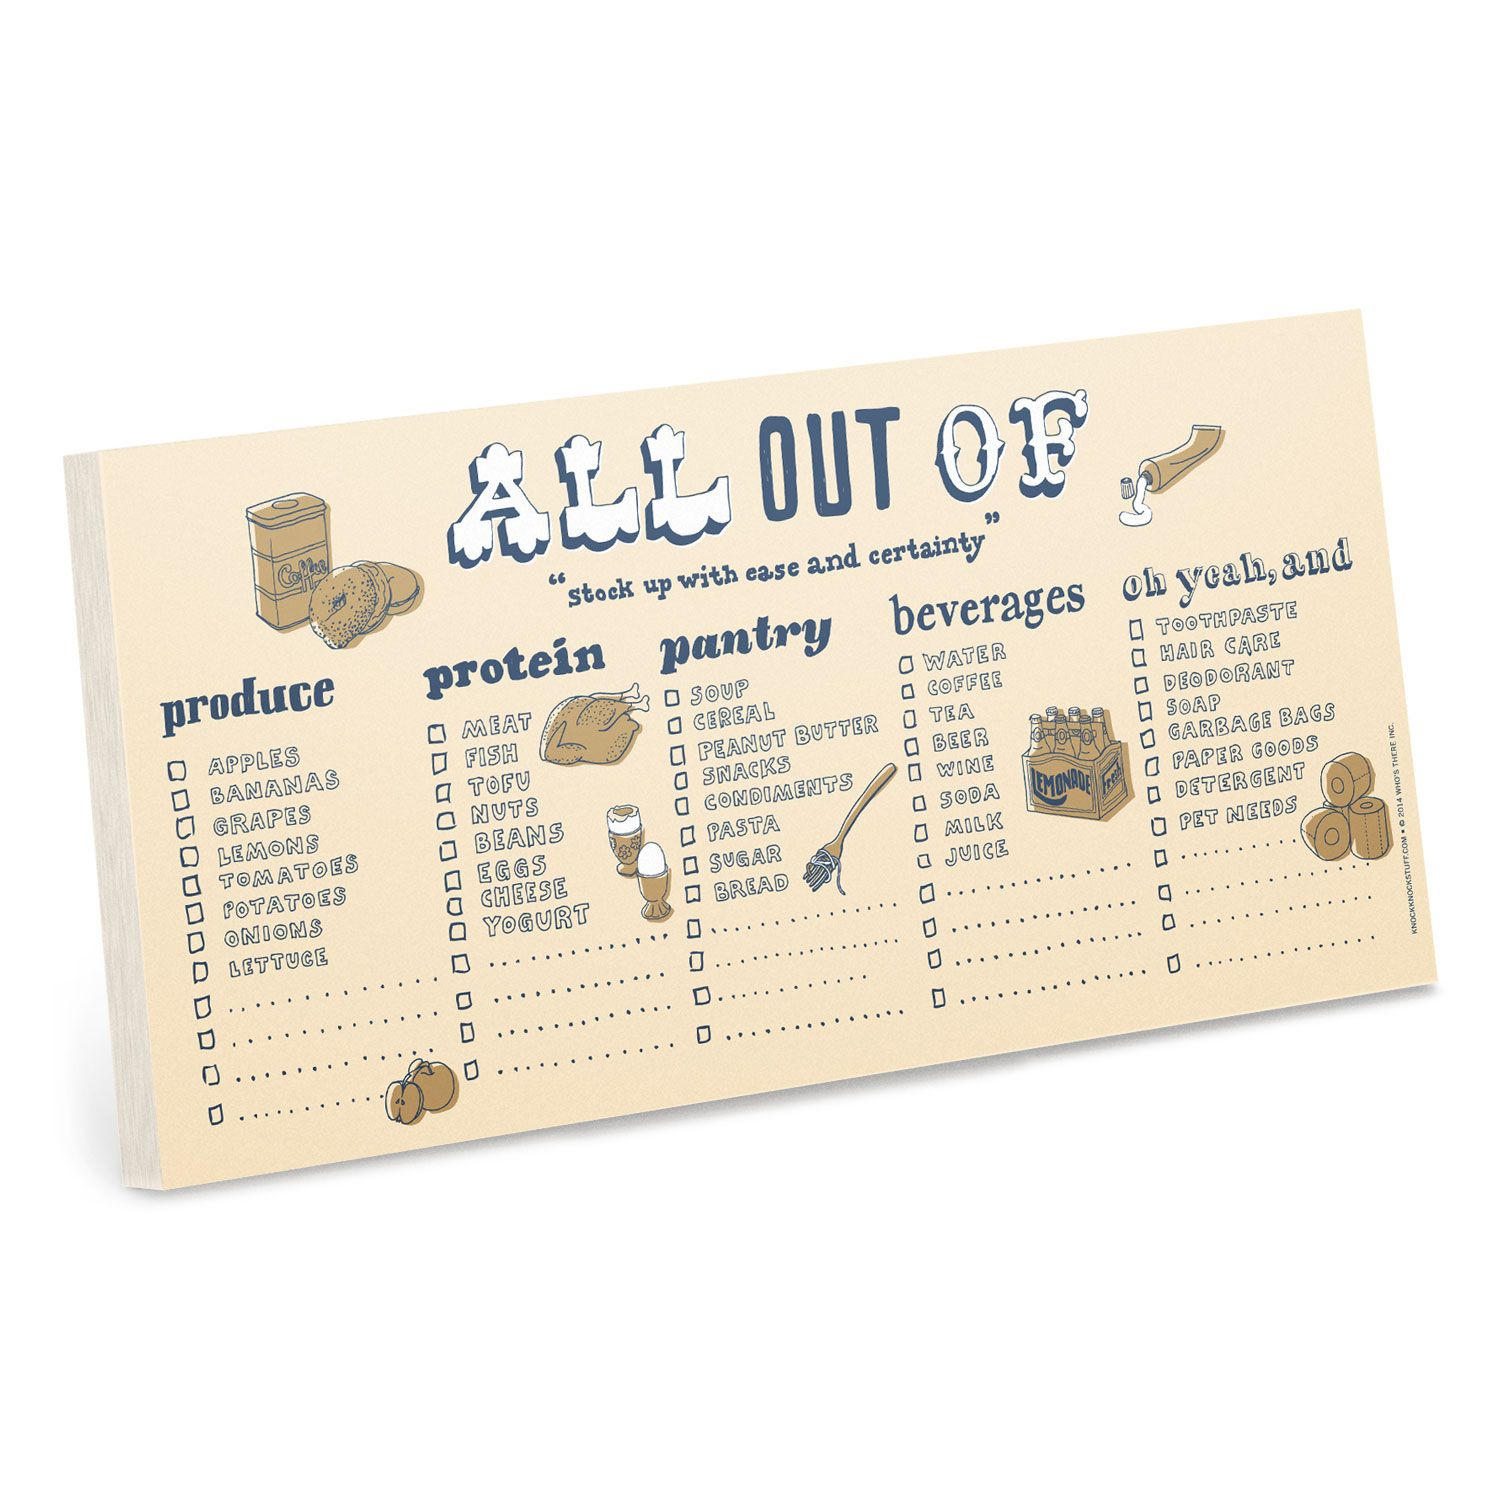 Knock Knock Notepads to do lists grocery lists and honey do lists— Knock Knock pads are fun desk accessories cool office supplies and stationery